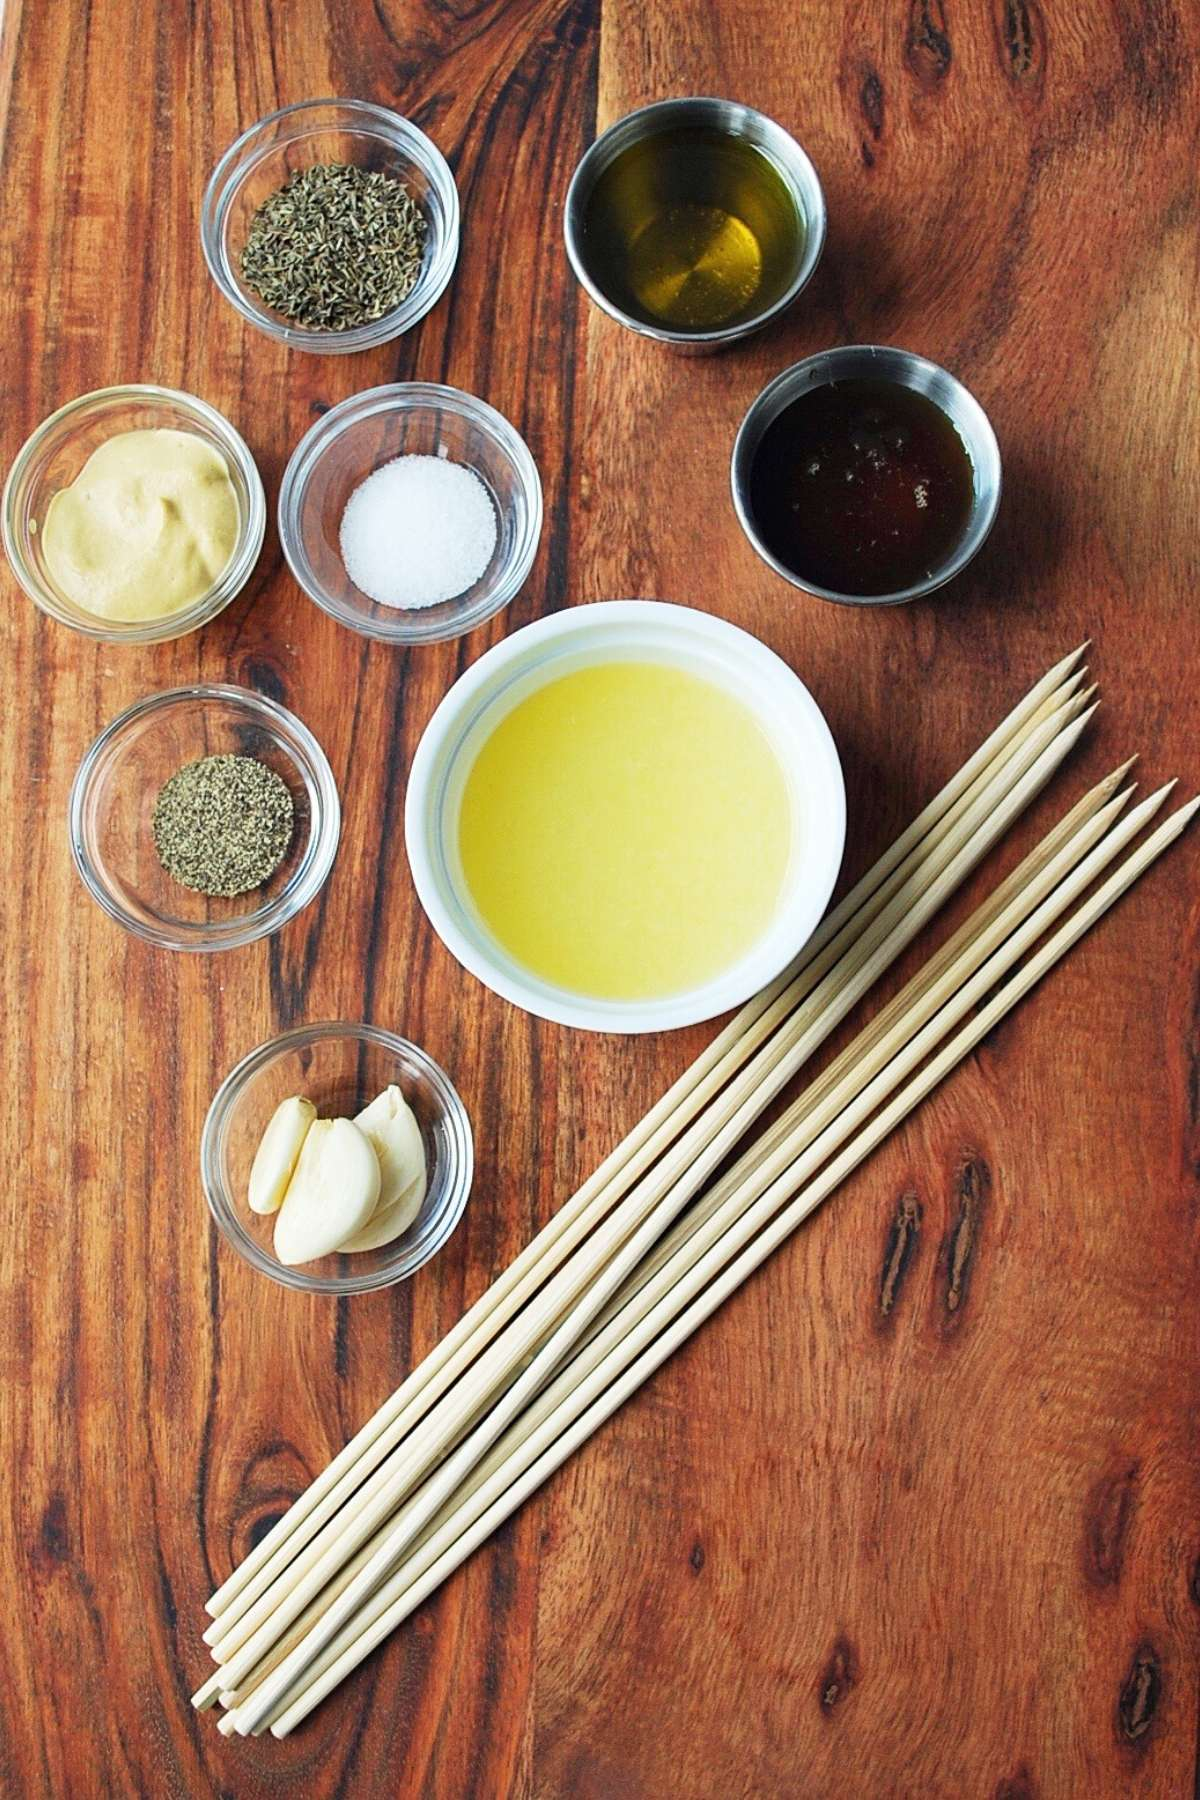 marinade ingredients for kabobs on a wooden board